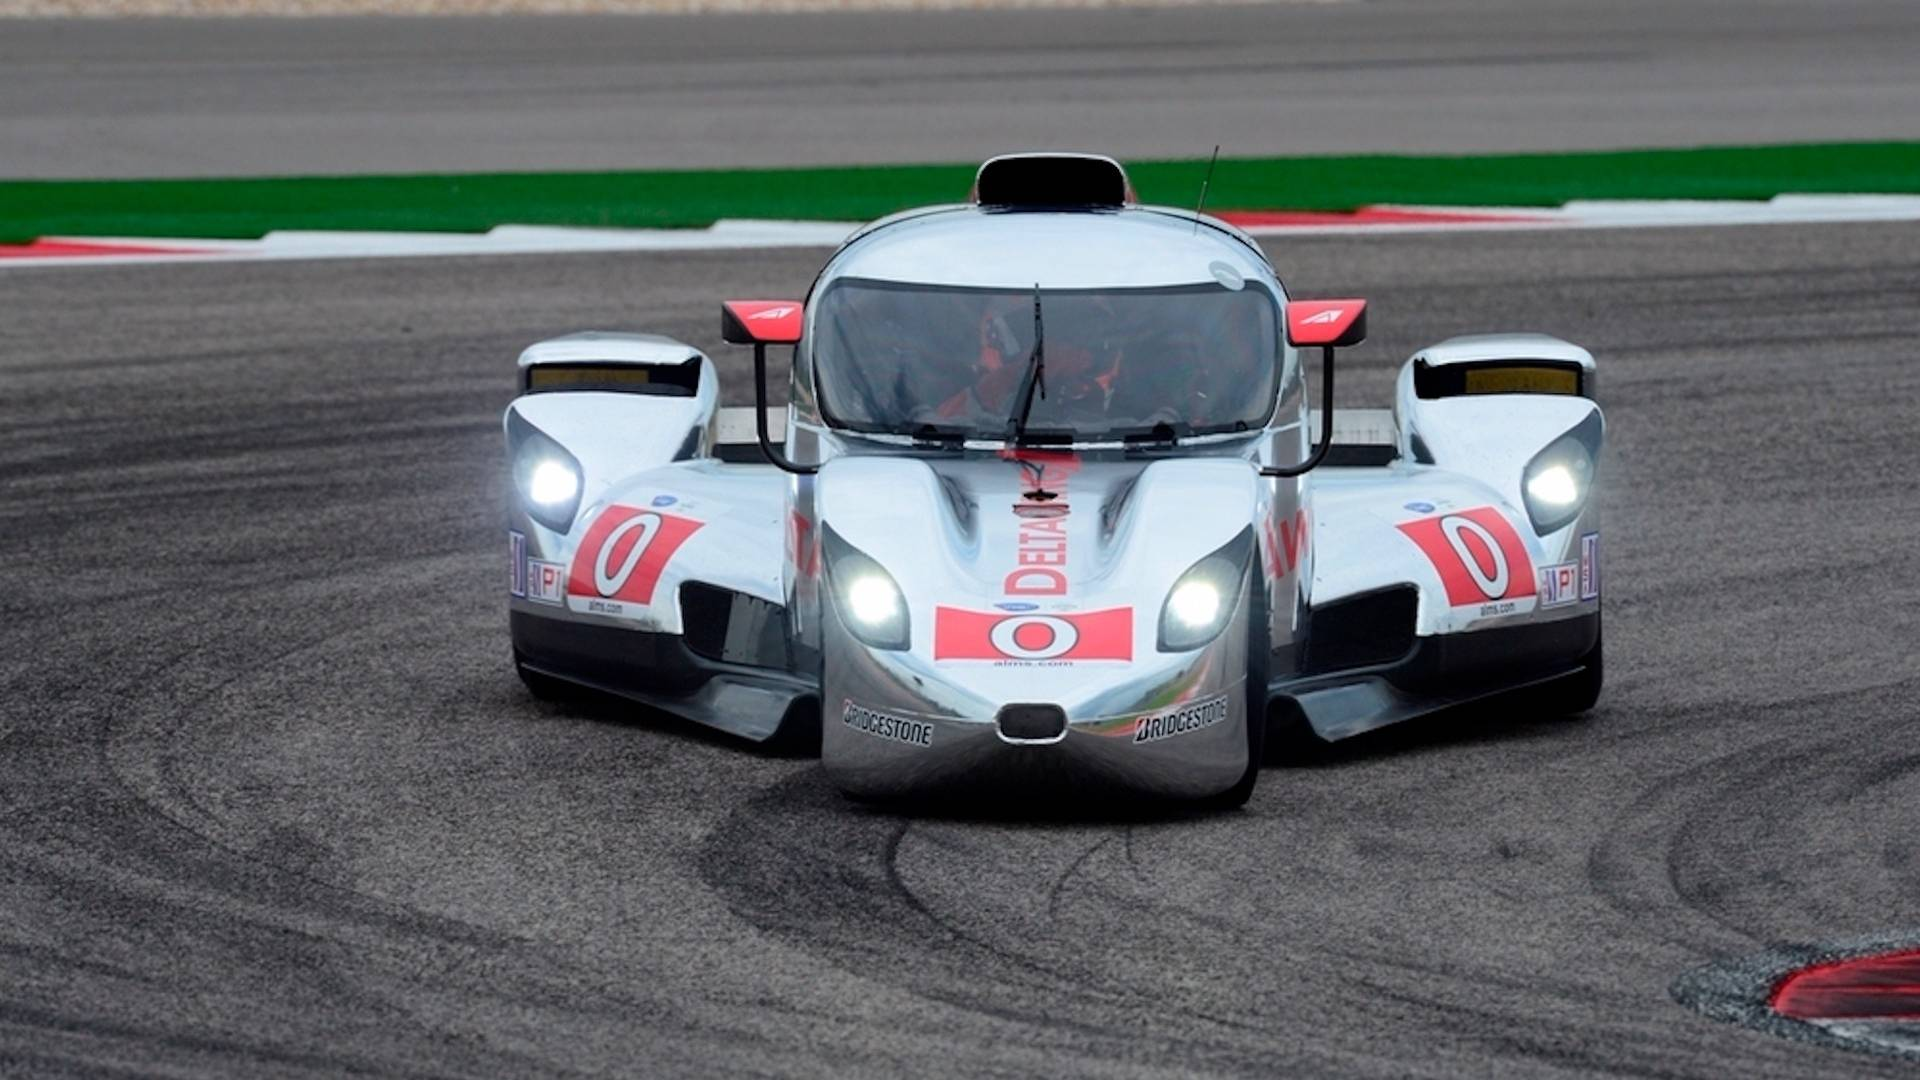 DeltaWing 2013 for sale (16)